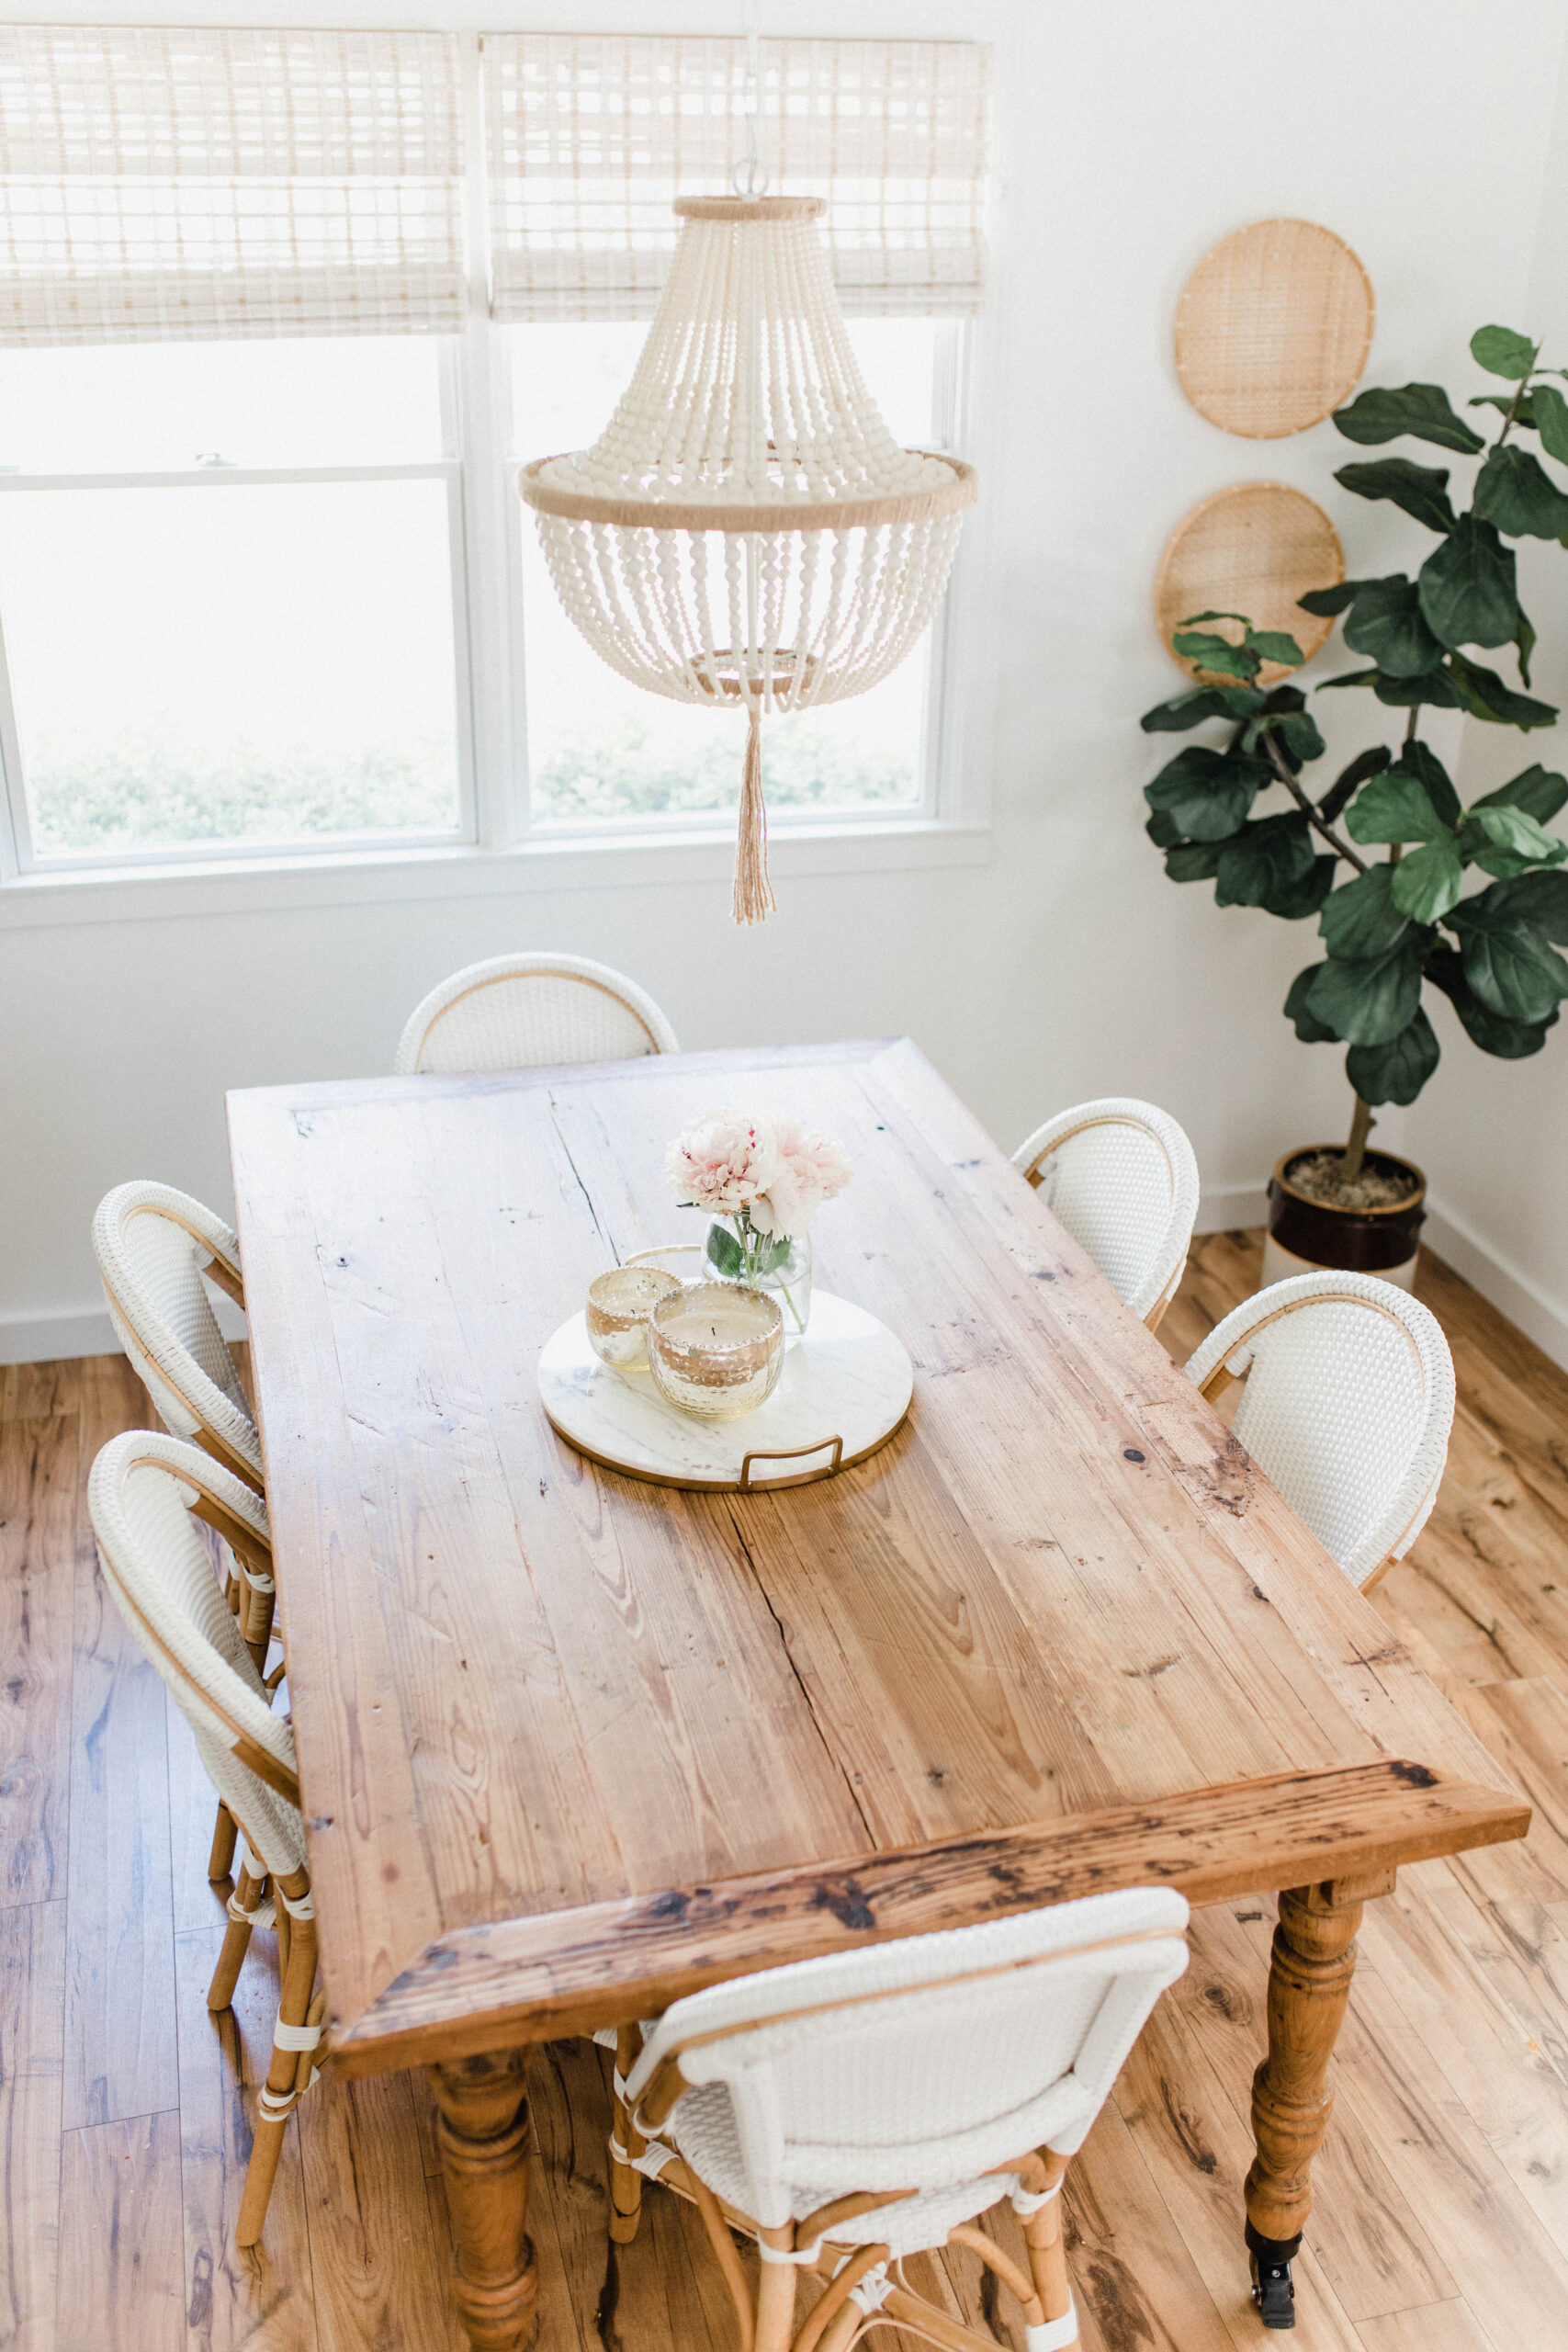 Connecticut life and style blogger Lauren McBride give a peek into her modern coastal dining room, including a source list.